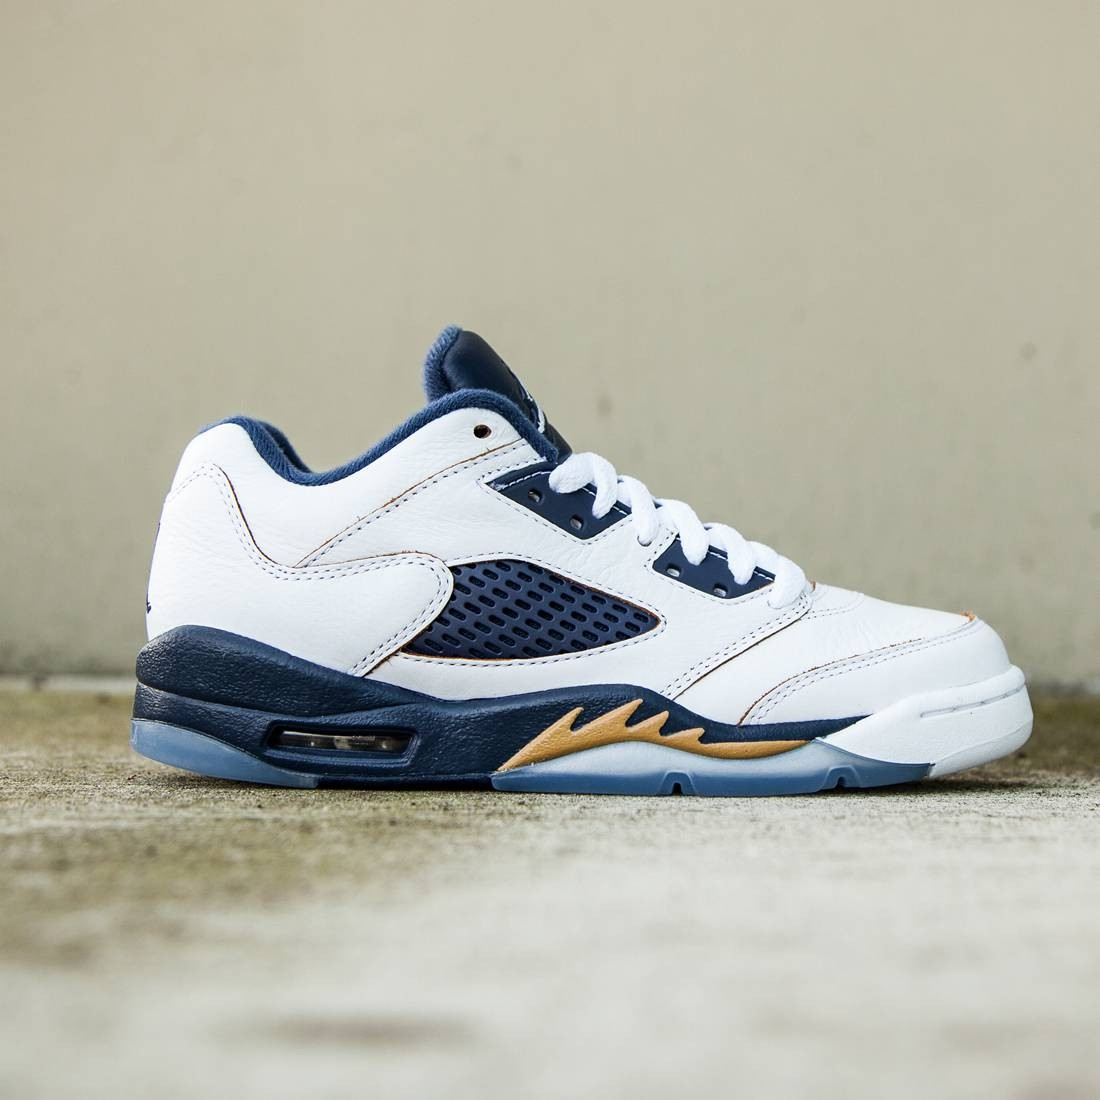 differently be935 7d09c Air Jordan 5 Retro Low Dunk From Above Big Kids (white / metallic gold /  mid navy)